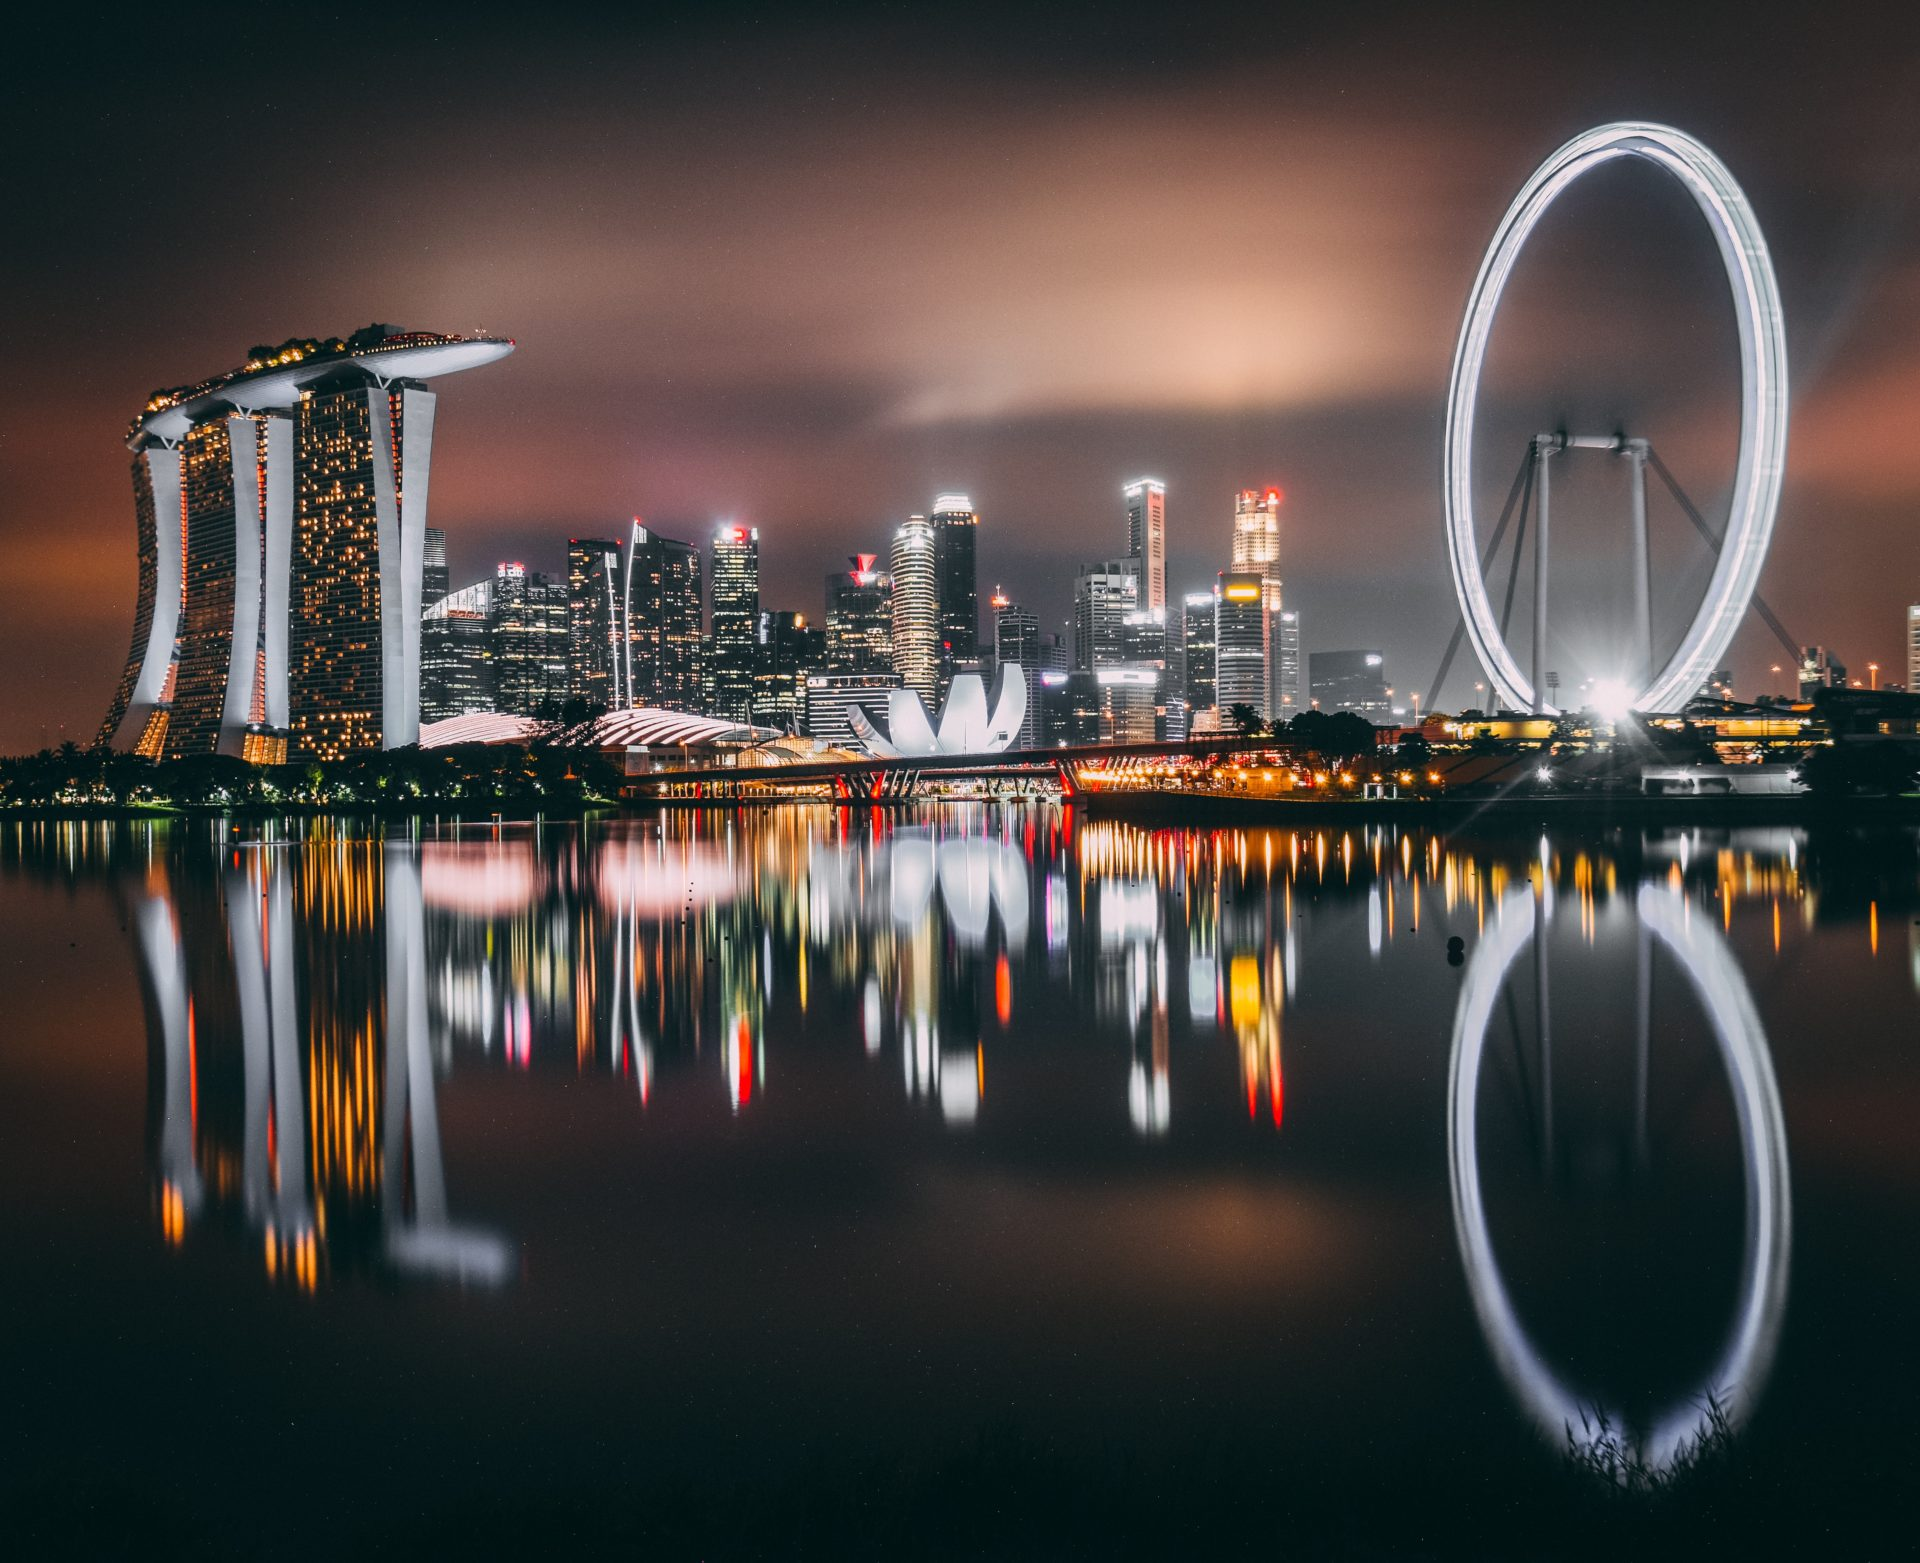 Singapore-Based Venture Capital Firm To Open The $10 Million LuneX Crypto Fund 1